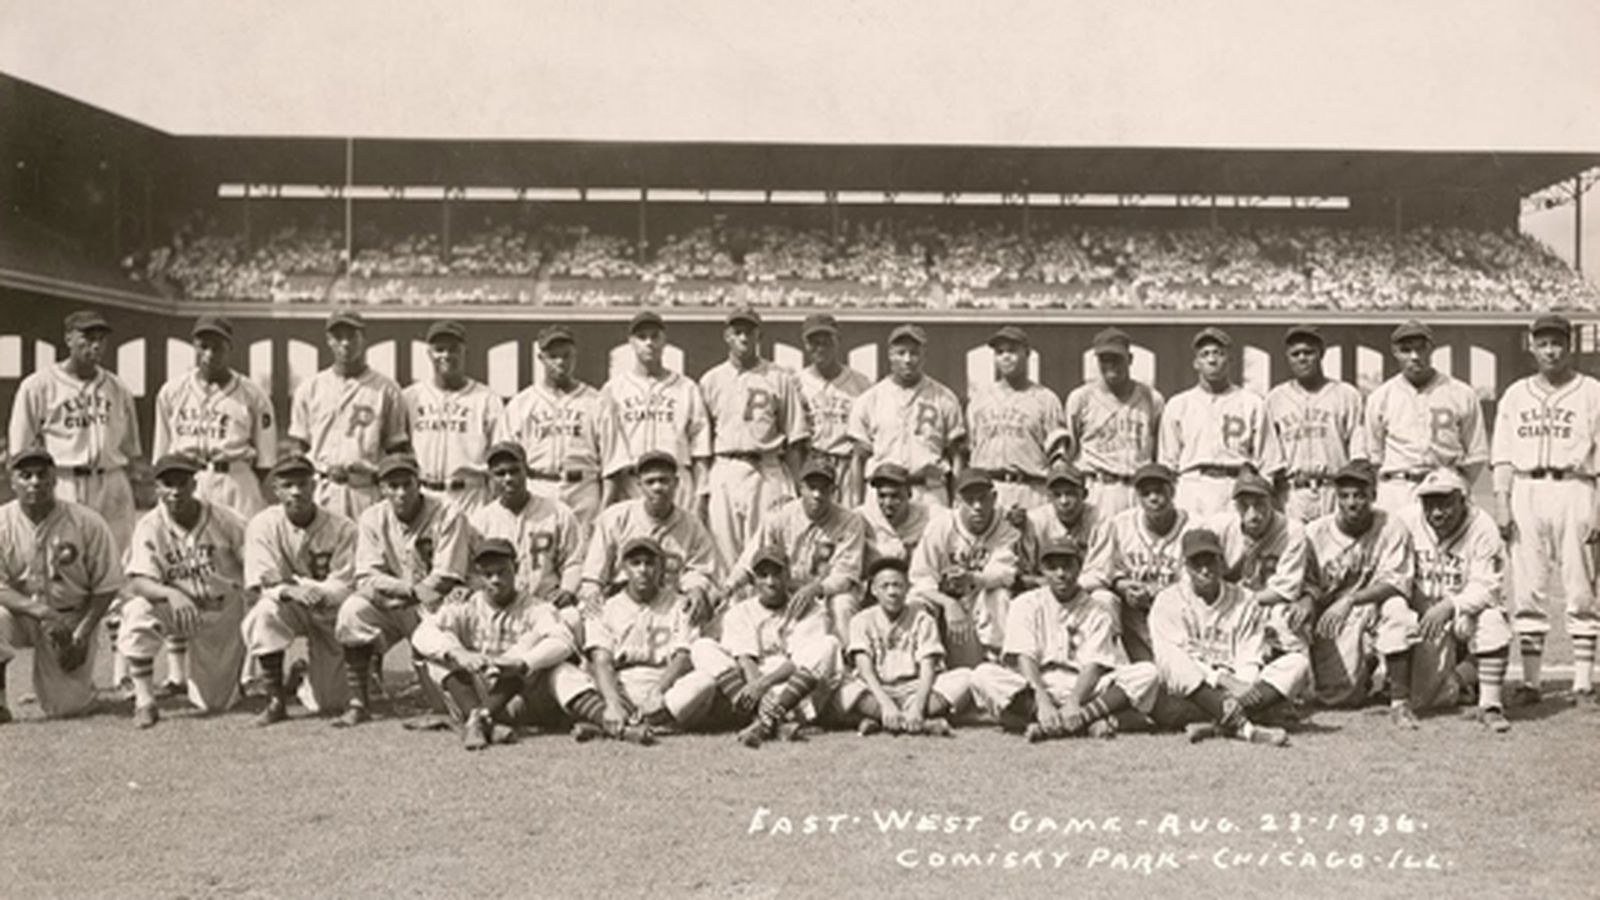 After The 1933 All Star Game The First East West Negro